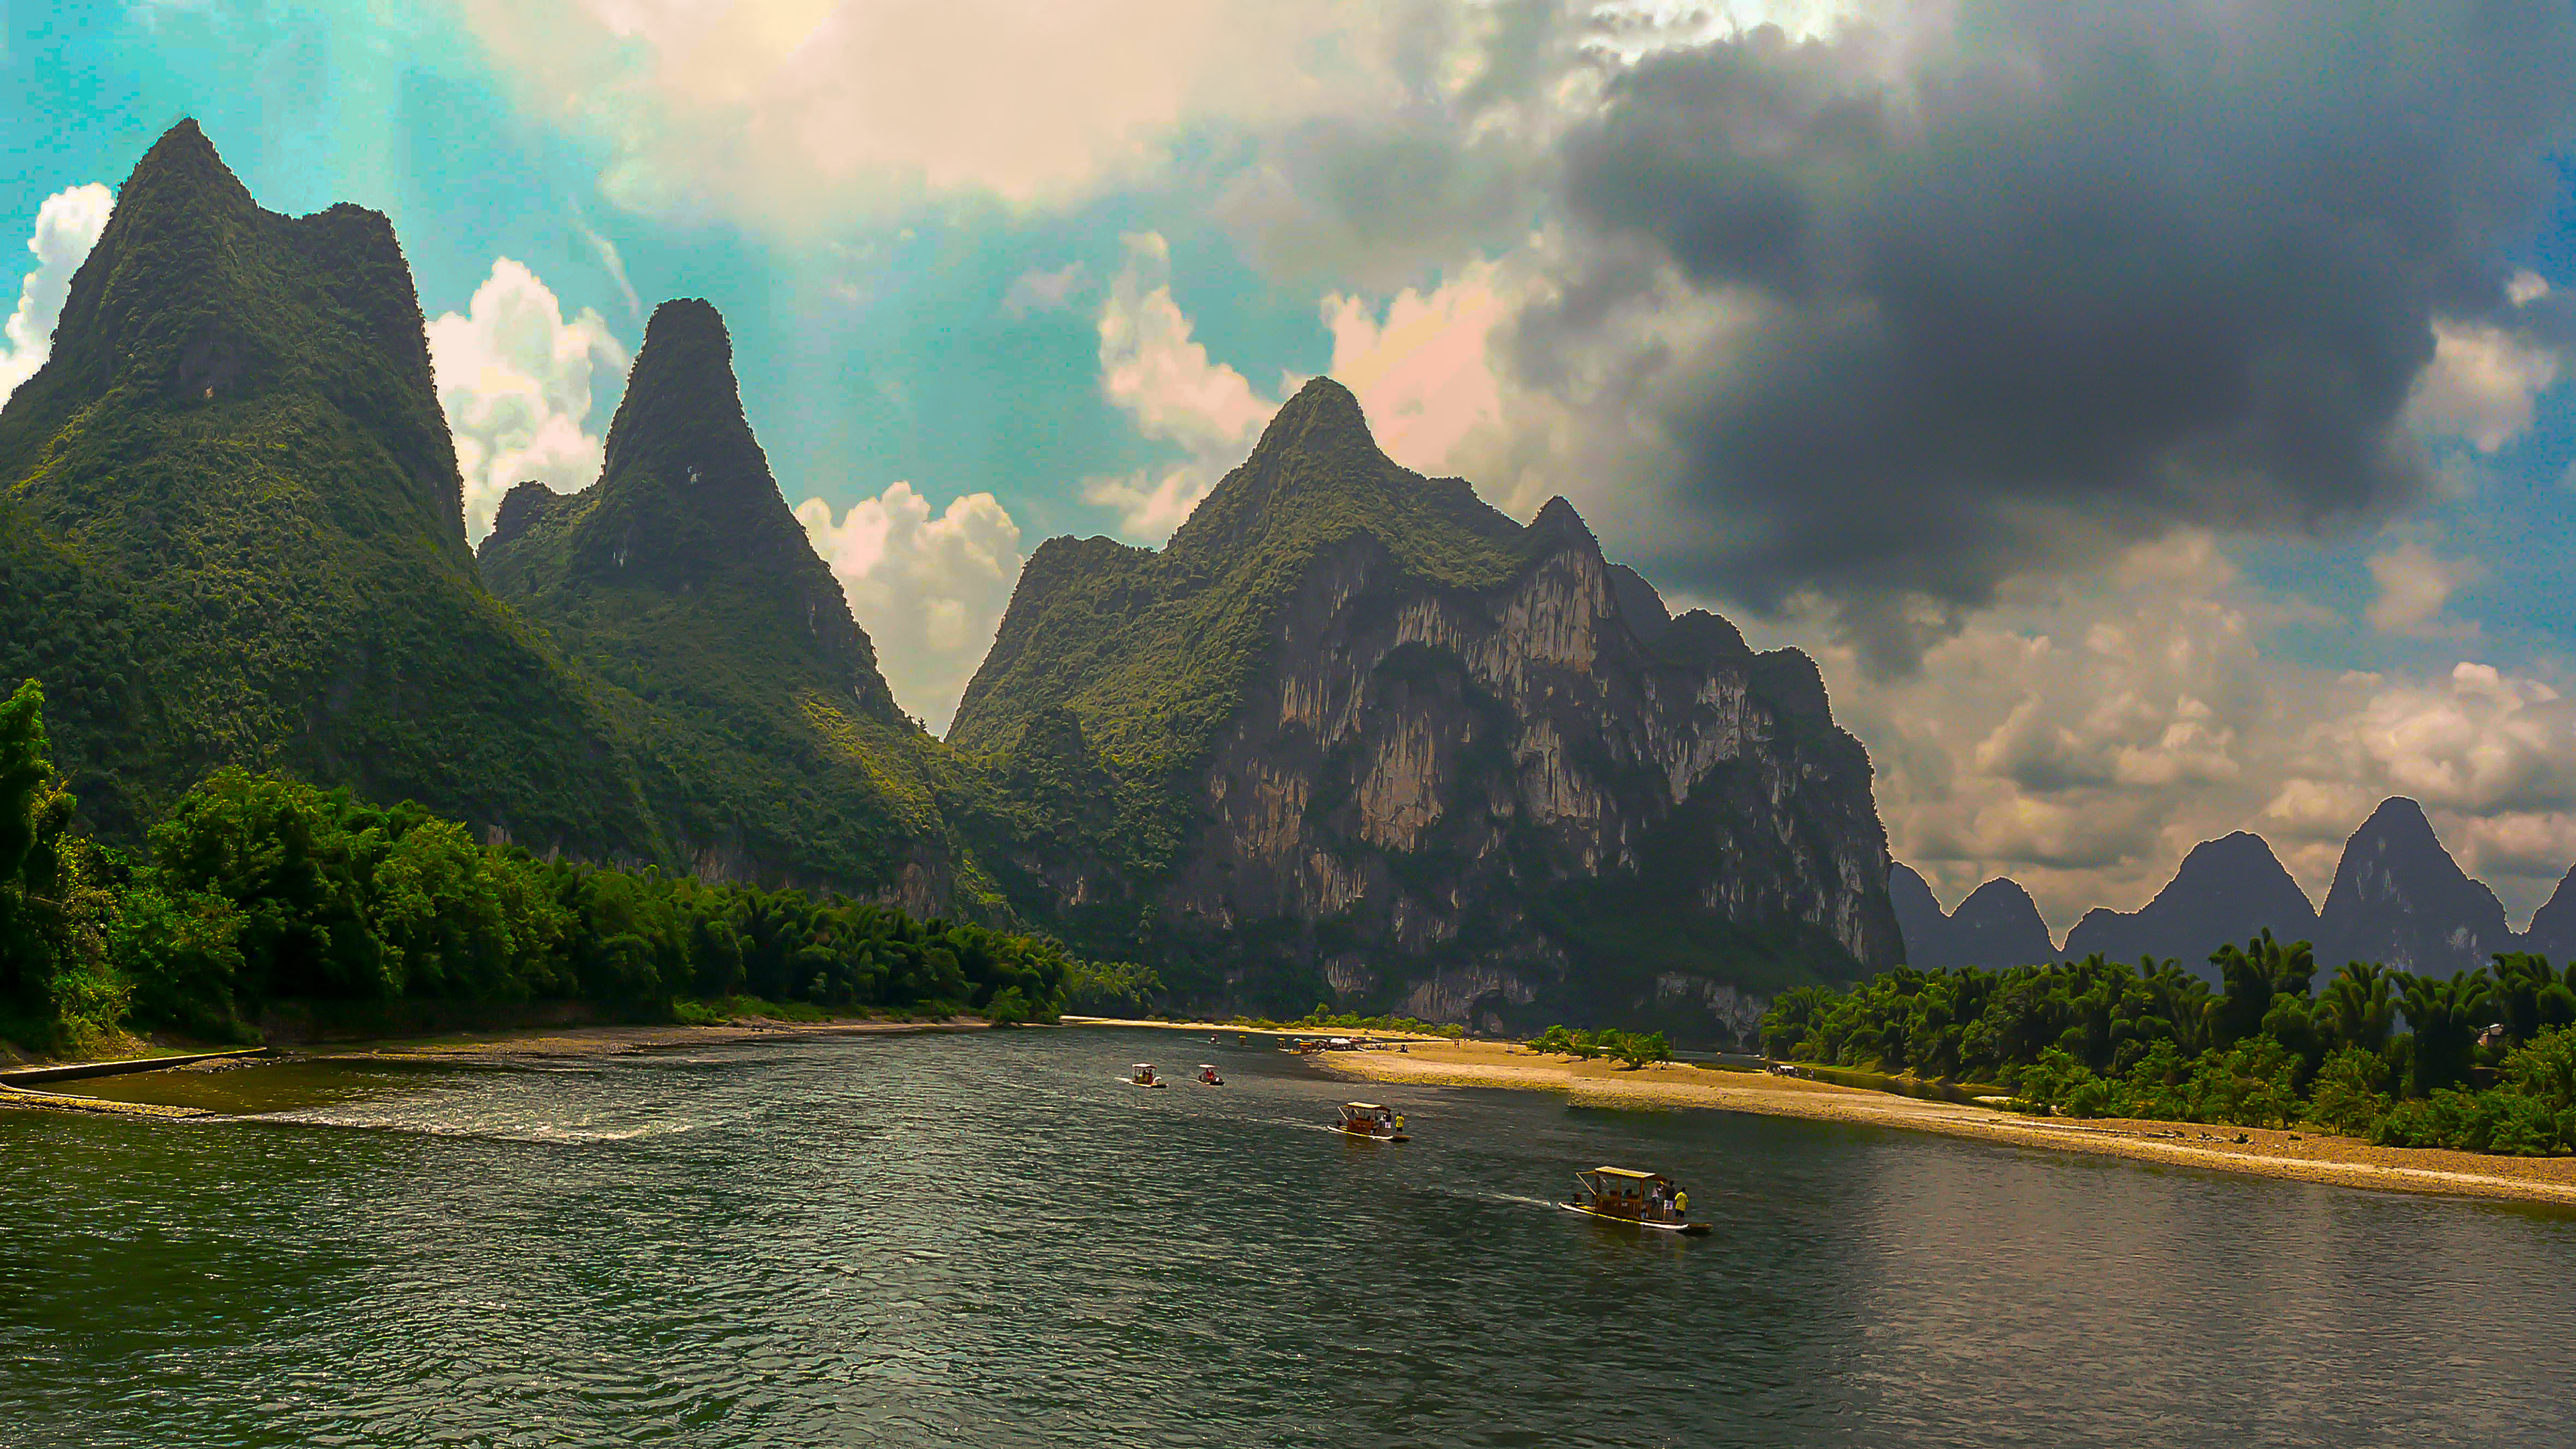 Nice Images Collection: Guanxi Zhuang Desktop Wallpapers